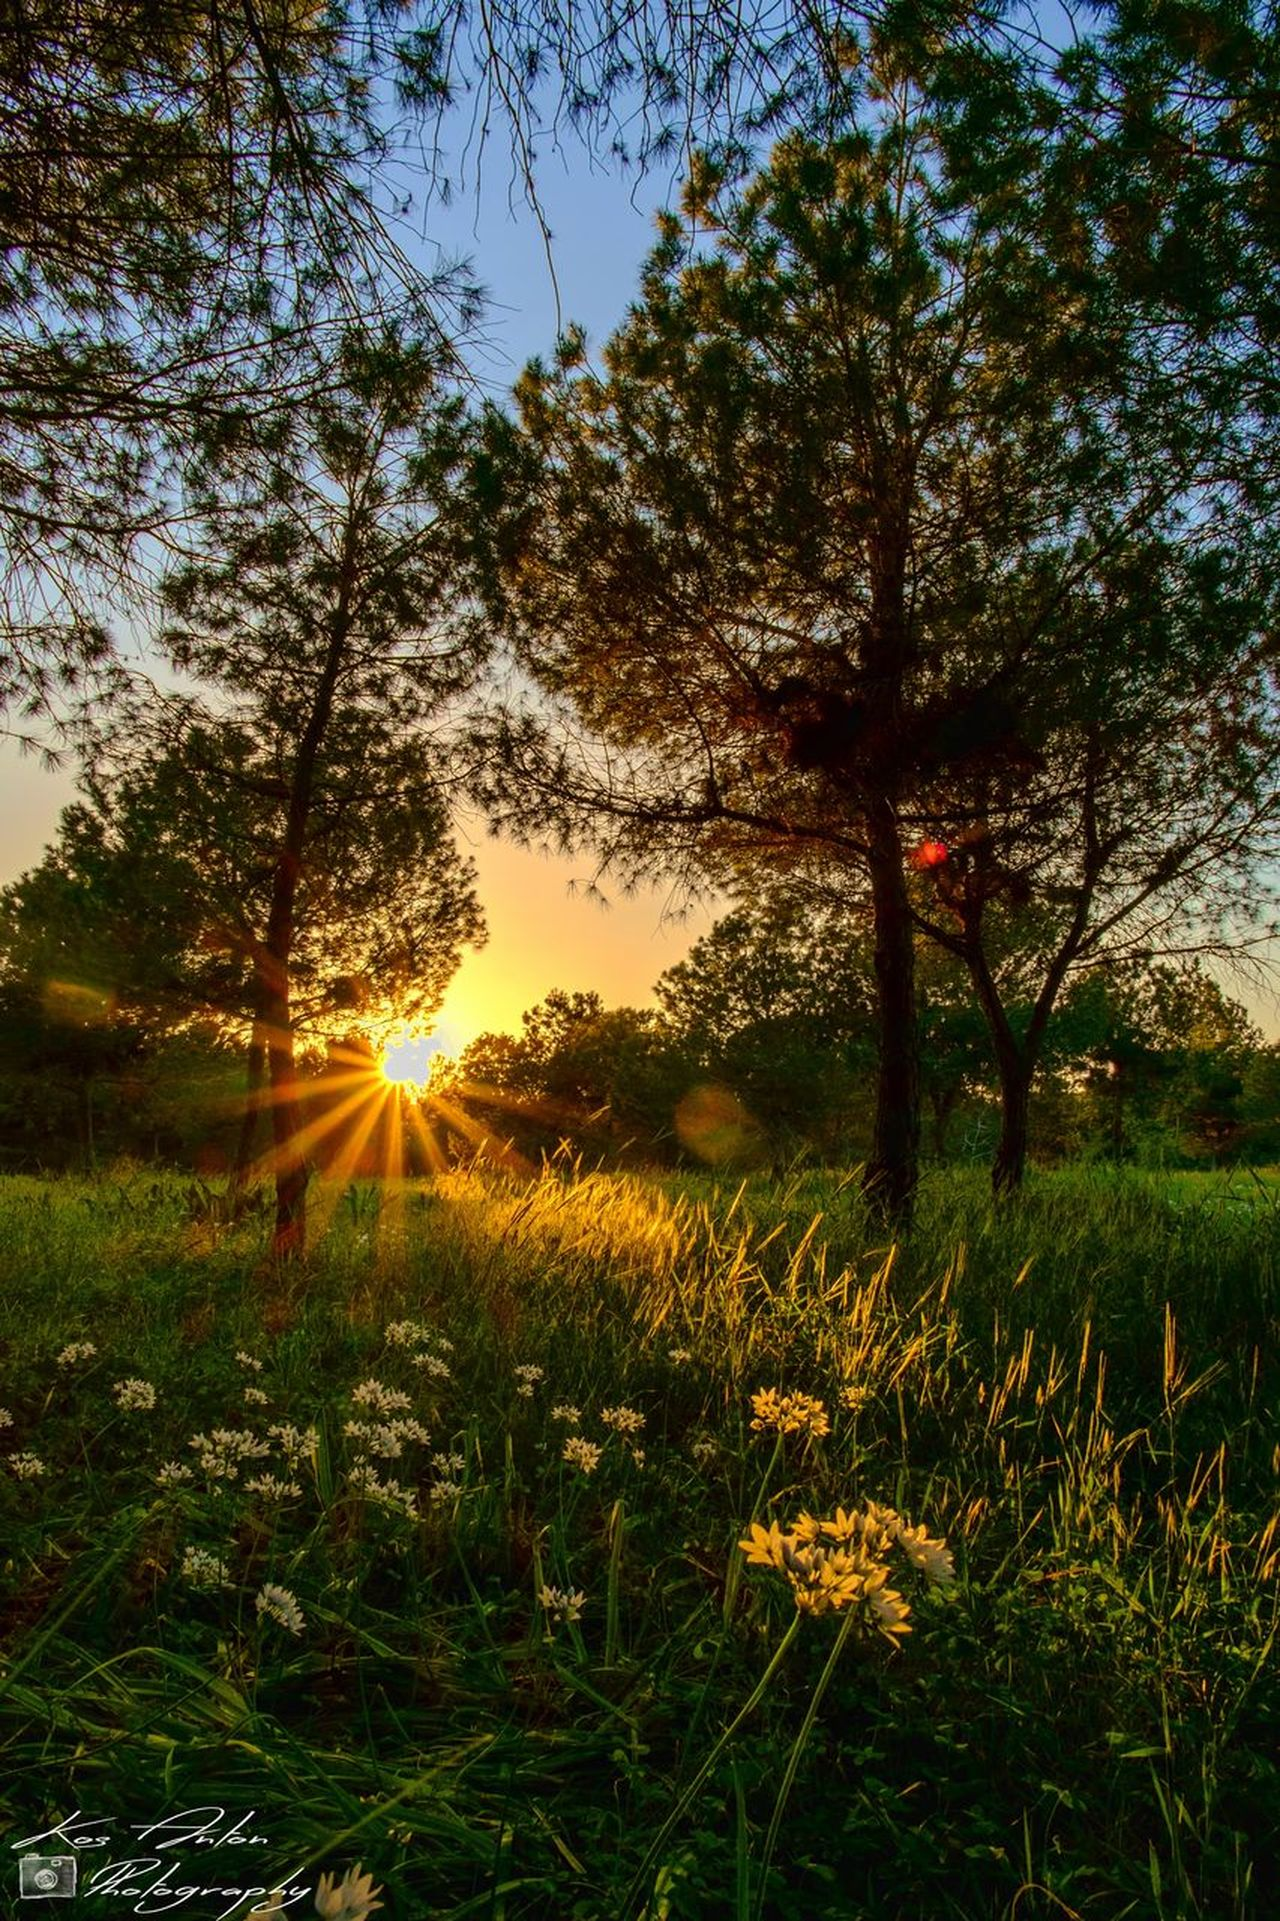 Flower Flowers Landscape Nature Nature_collection Sun Sunset Tree Trees